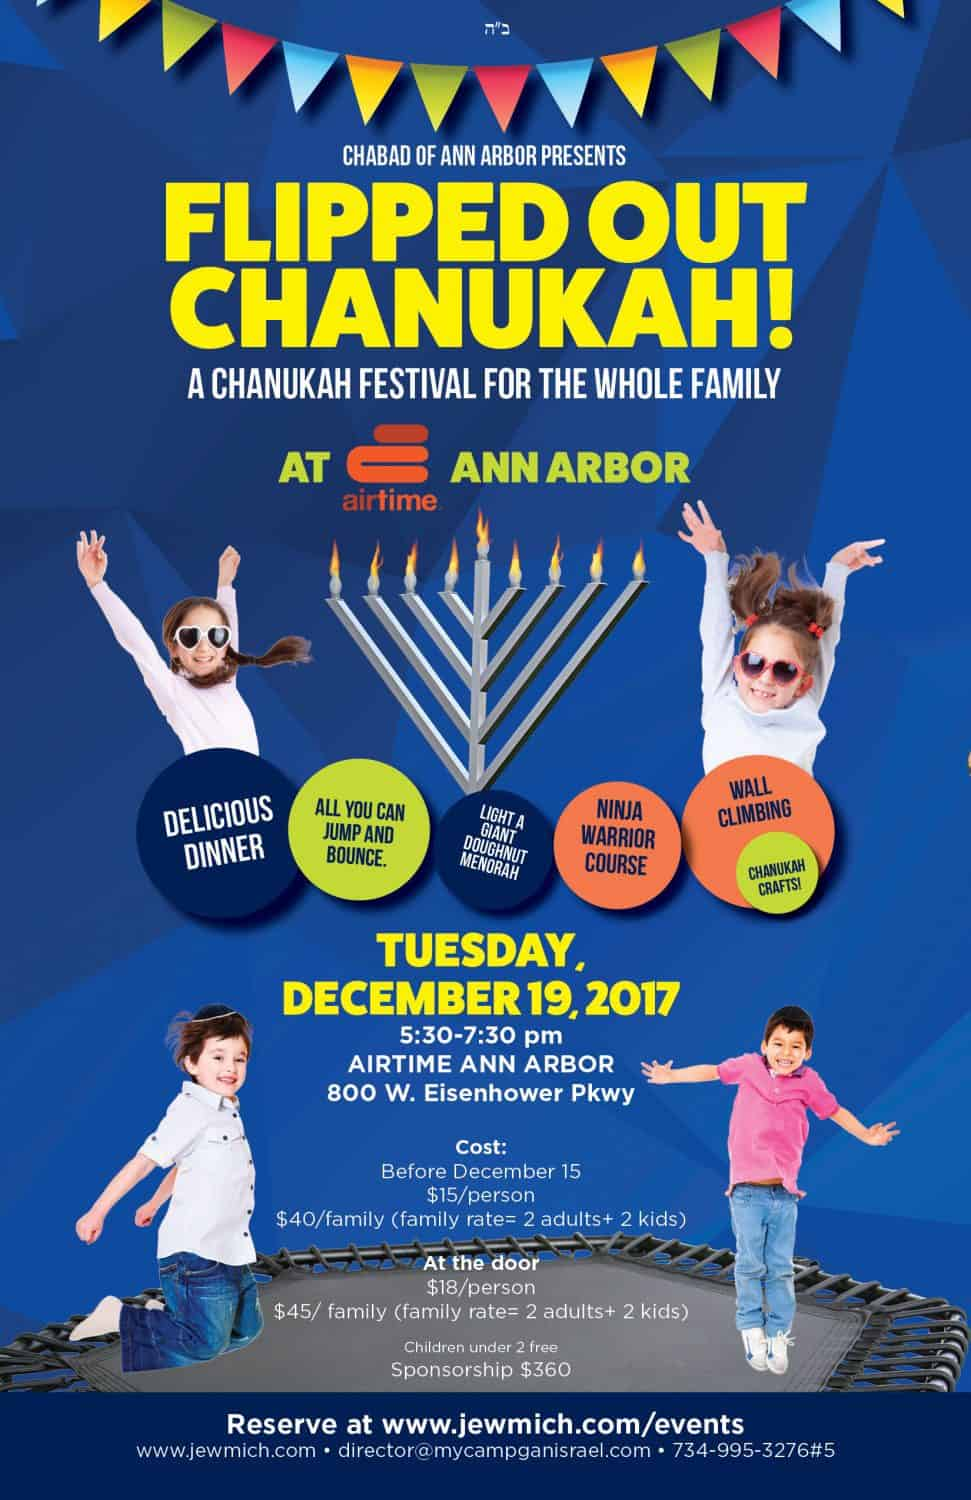 Flipped Out Chanukah